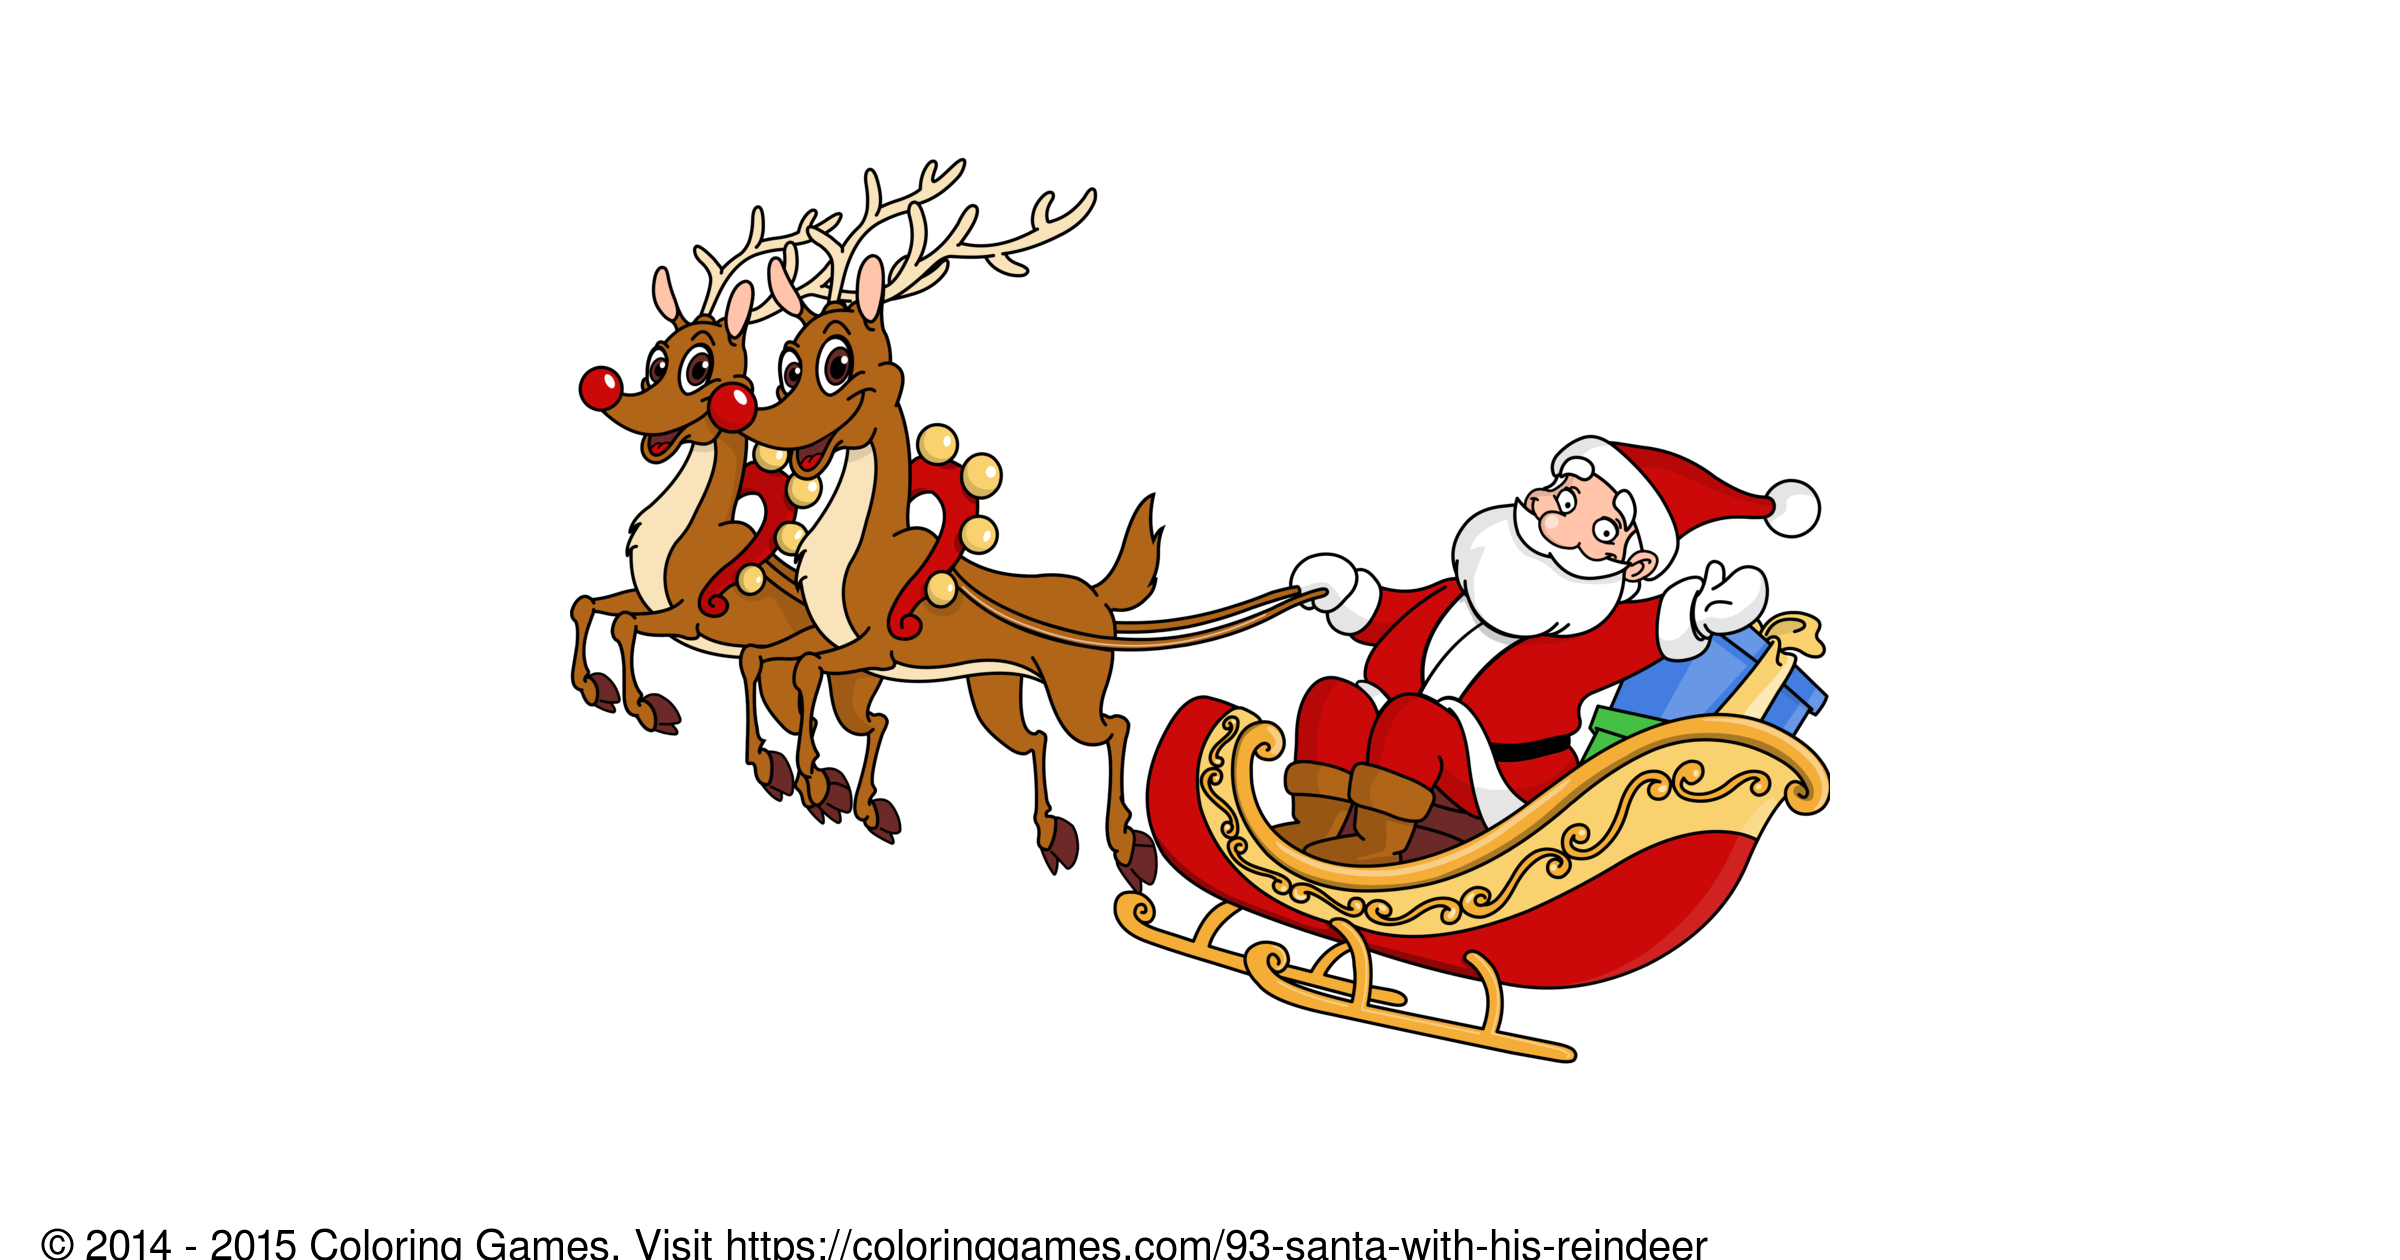 Santa with his reindeer - Coloring Games and Coloring Pages